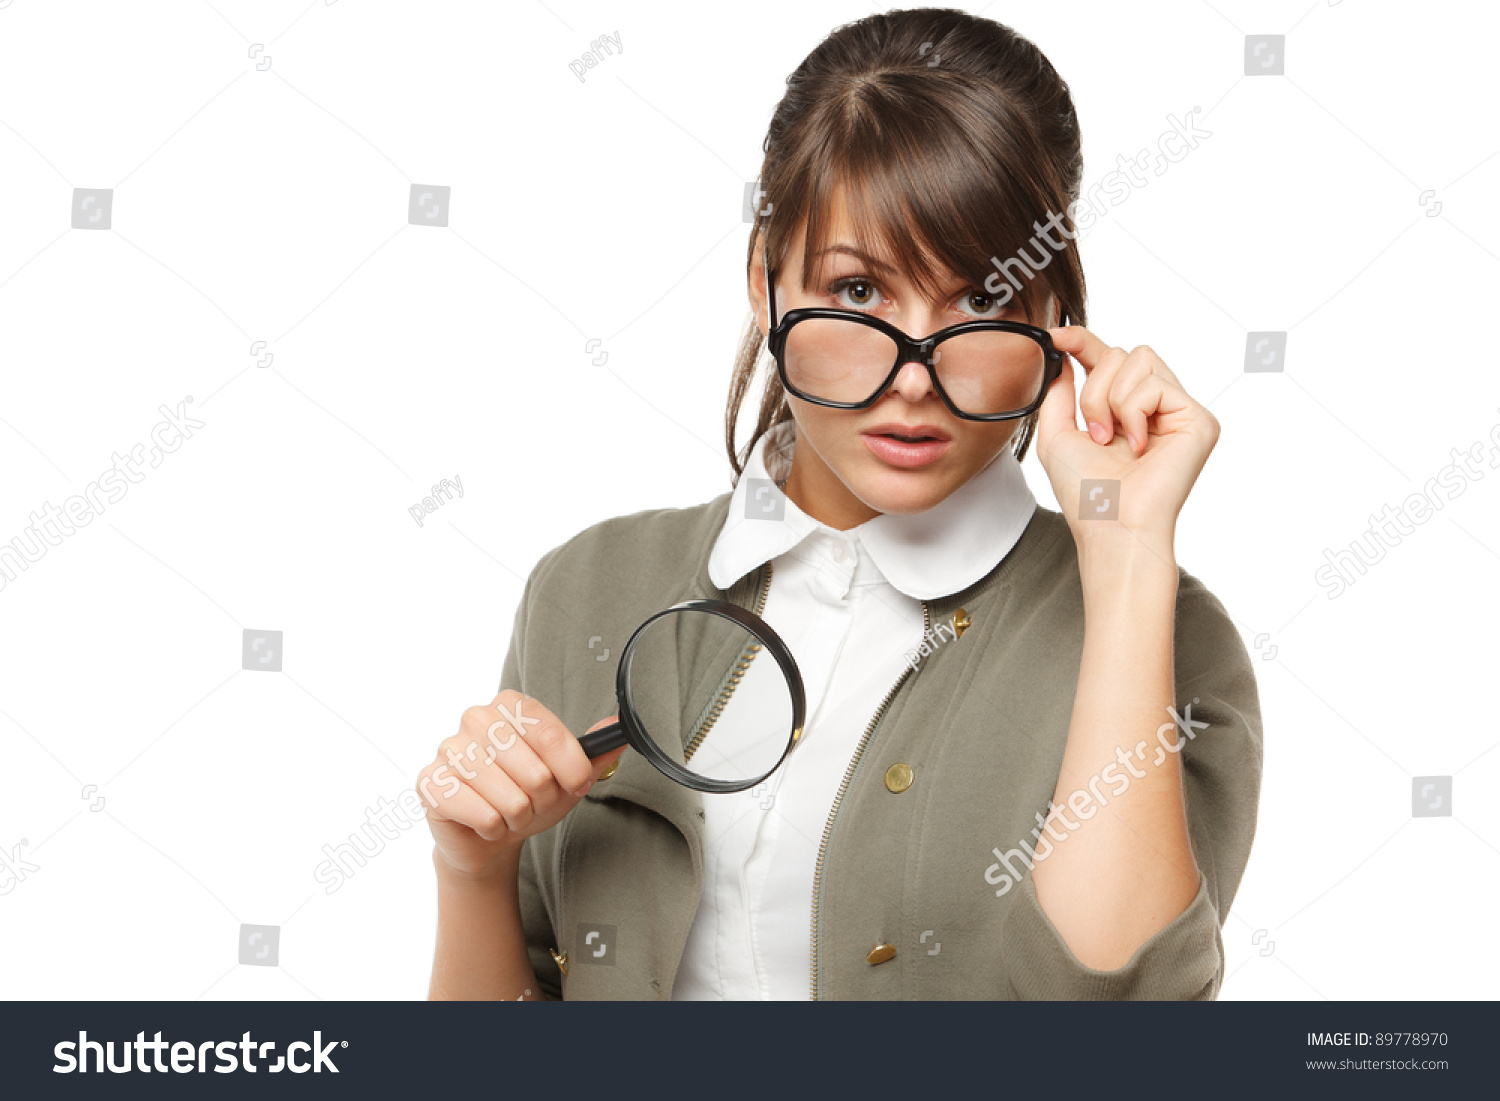 Woman Wearing Old Fashioned Eyeglasses Holding Magnifying